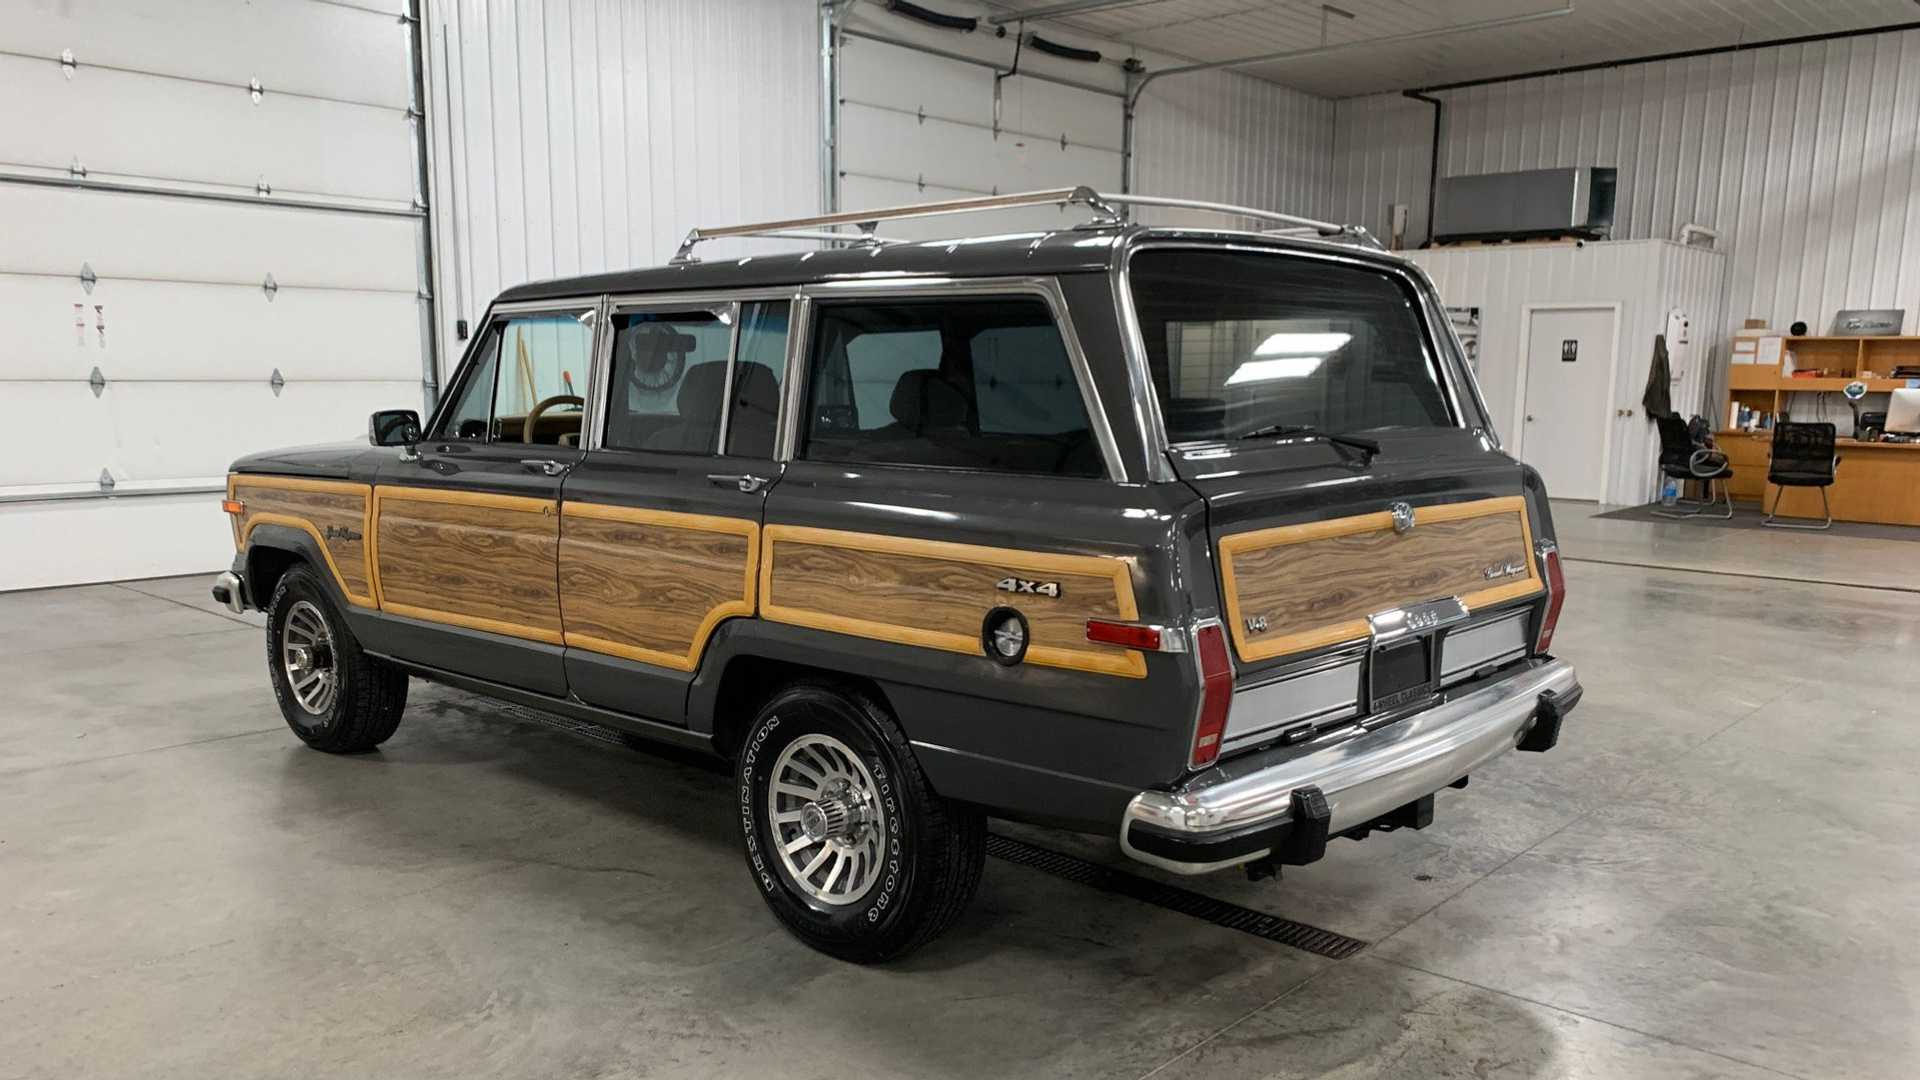 Wood You Buy This 1989 Jeep Grand Wagoneer For 25k Motorious